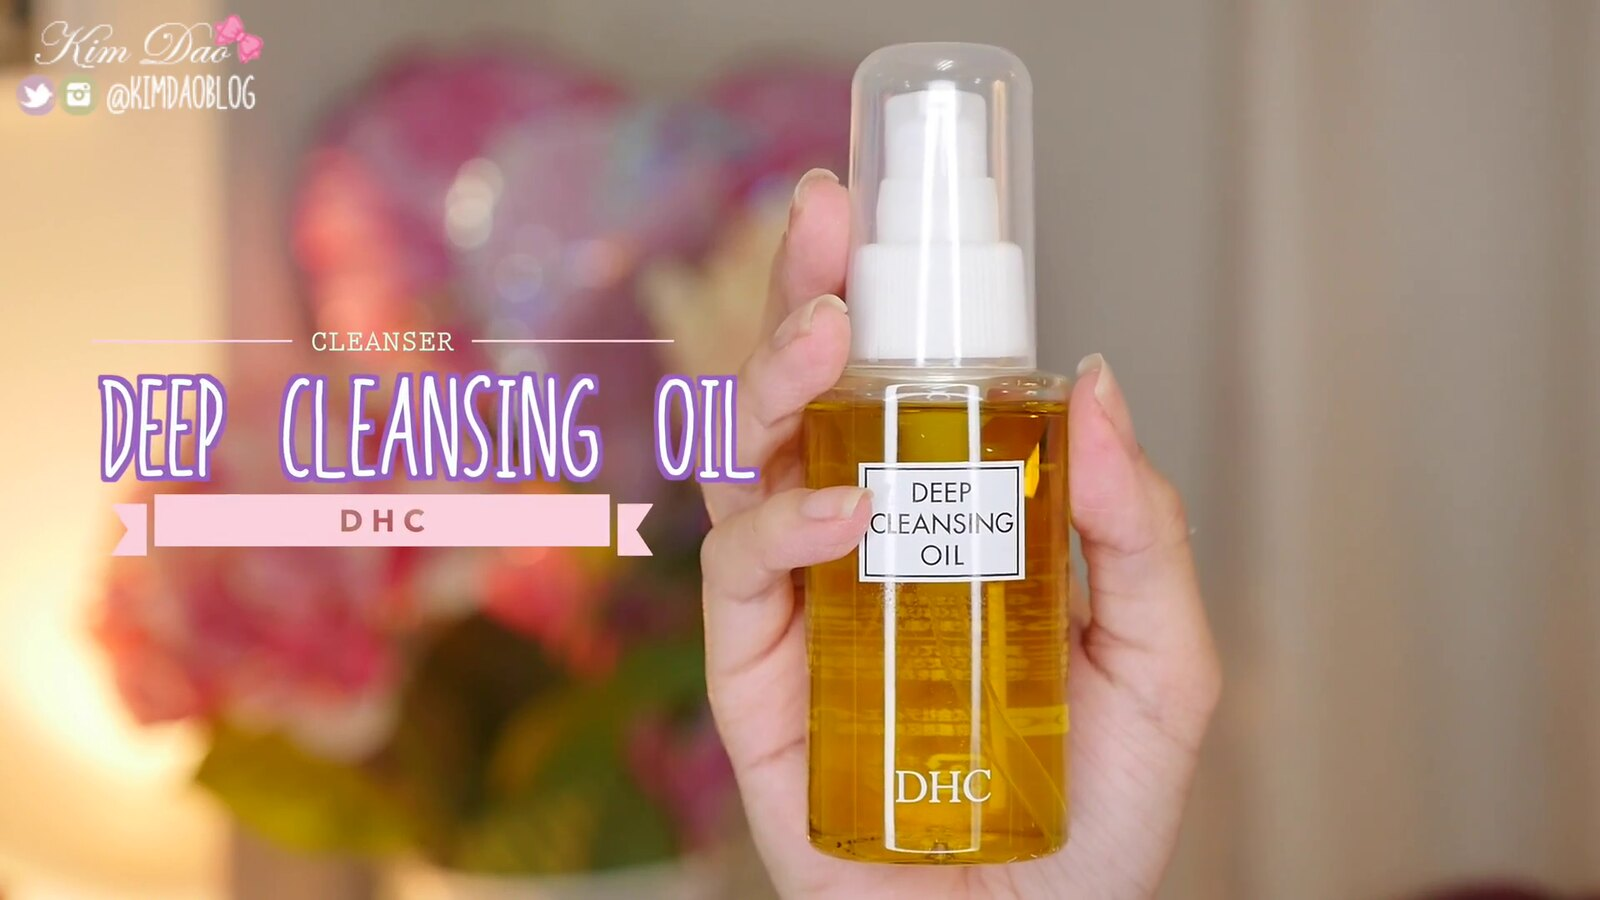 Top 10 Japanese Skincare DHC Deep Cleansing Oil Kim Dao